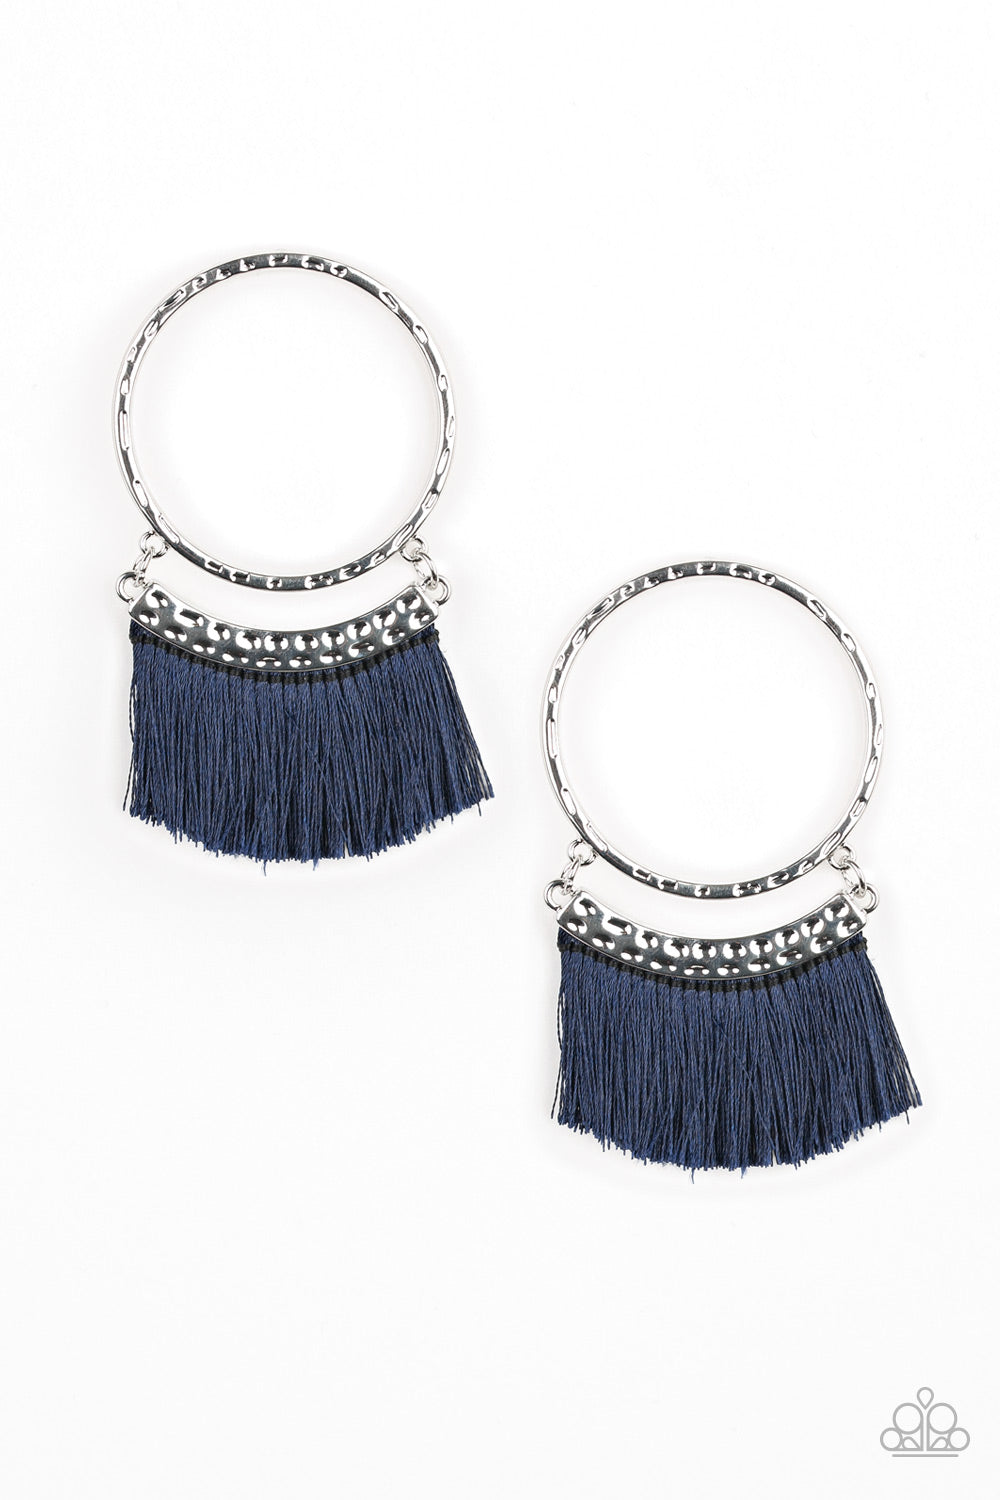 Paparazzi Accessories - This Is Sparta! | Blue Tassel | Paparazzi Earring - Earrings